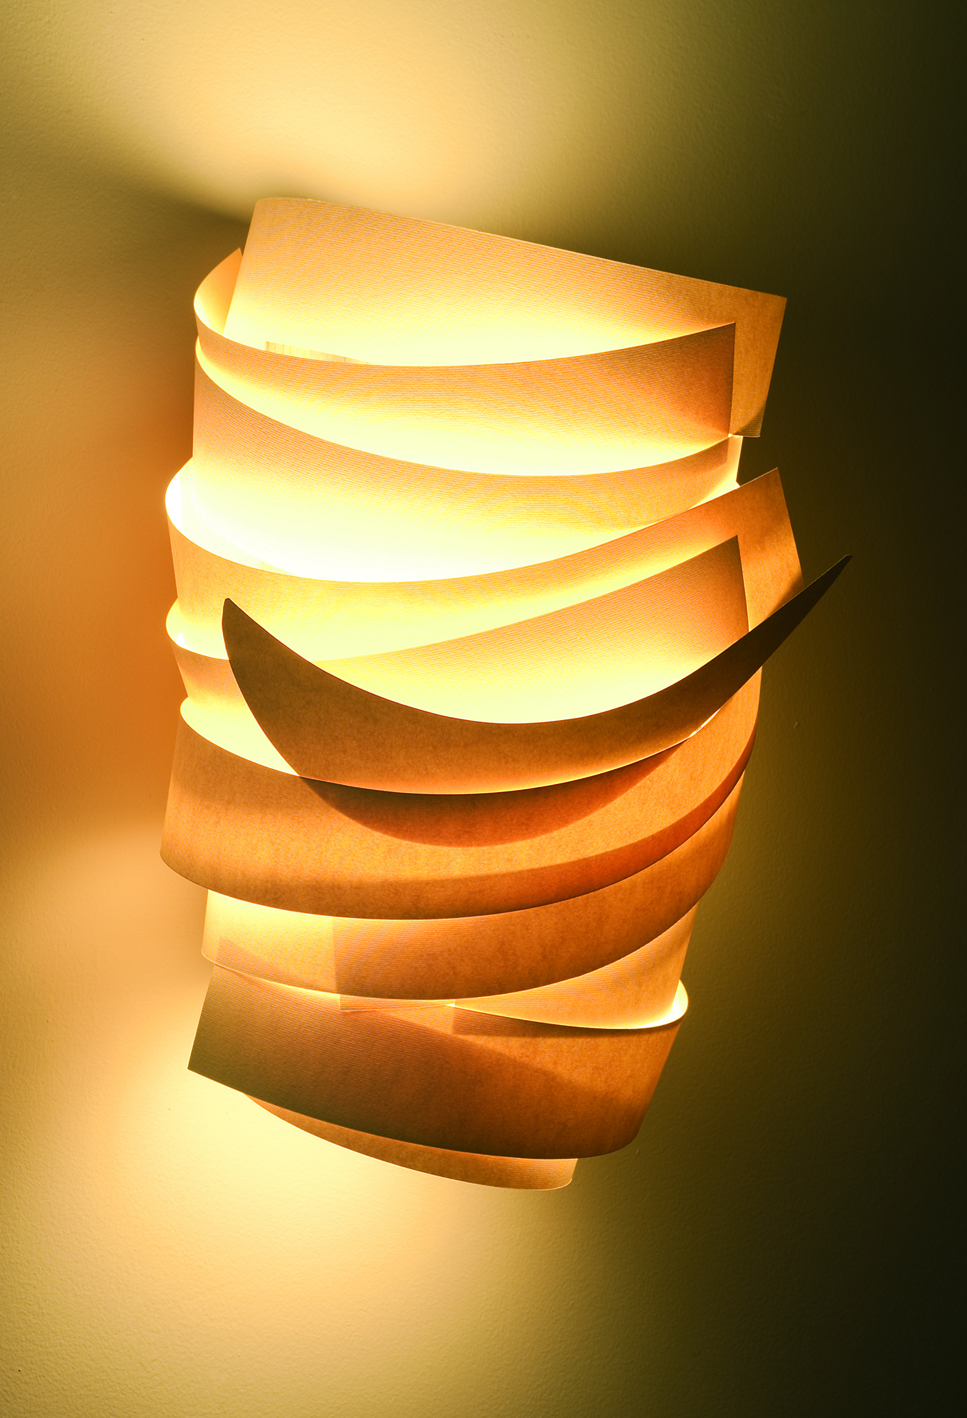 LIGHT COLLECTION OF SCULPTURES - LUCIDAUTORE - BY DAVIDE CLEMENTI ARCHITECT